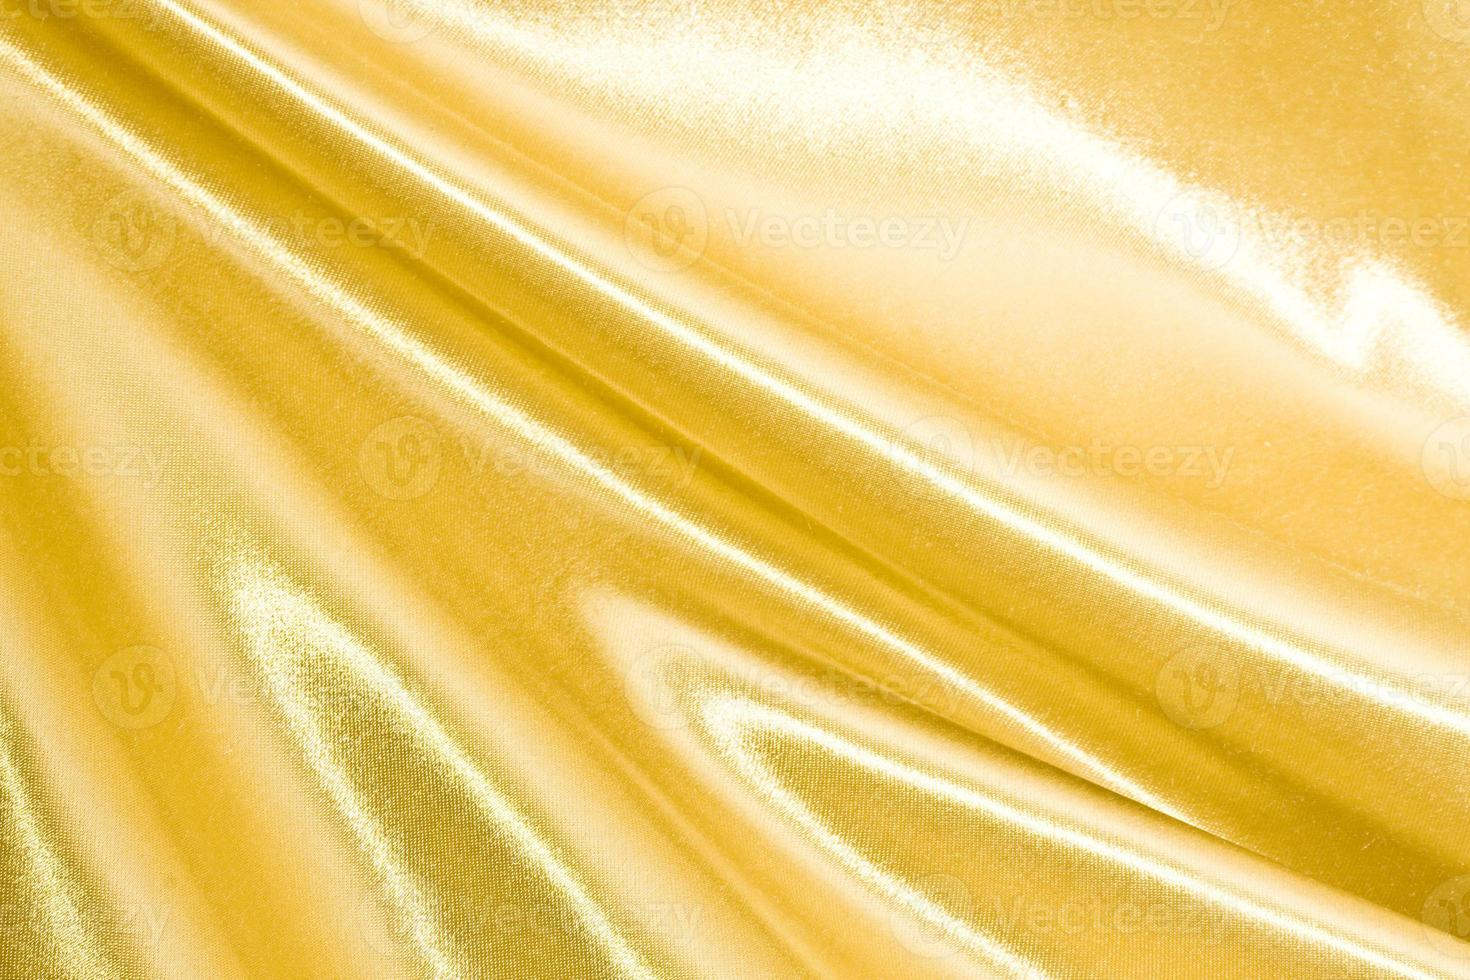 Golden silk photo